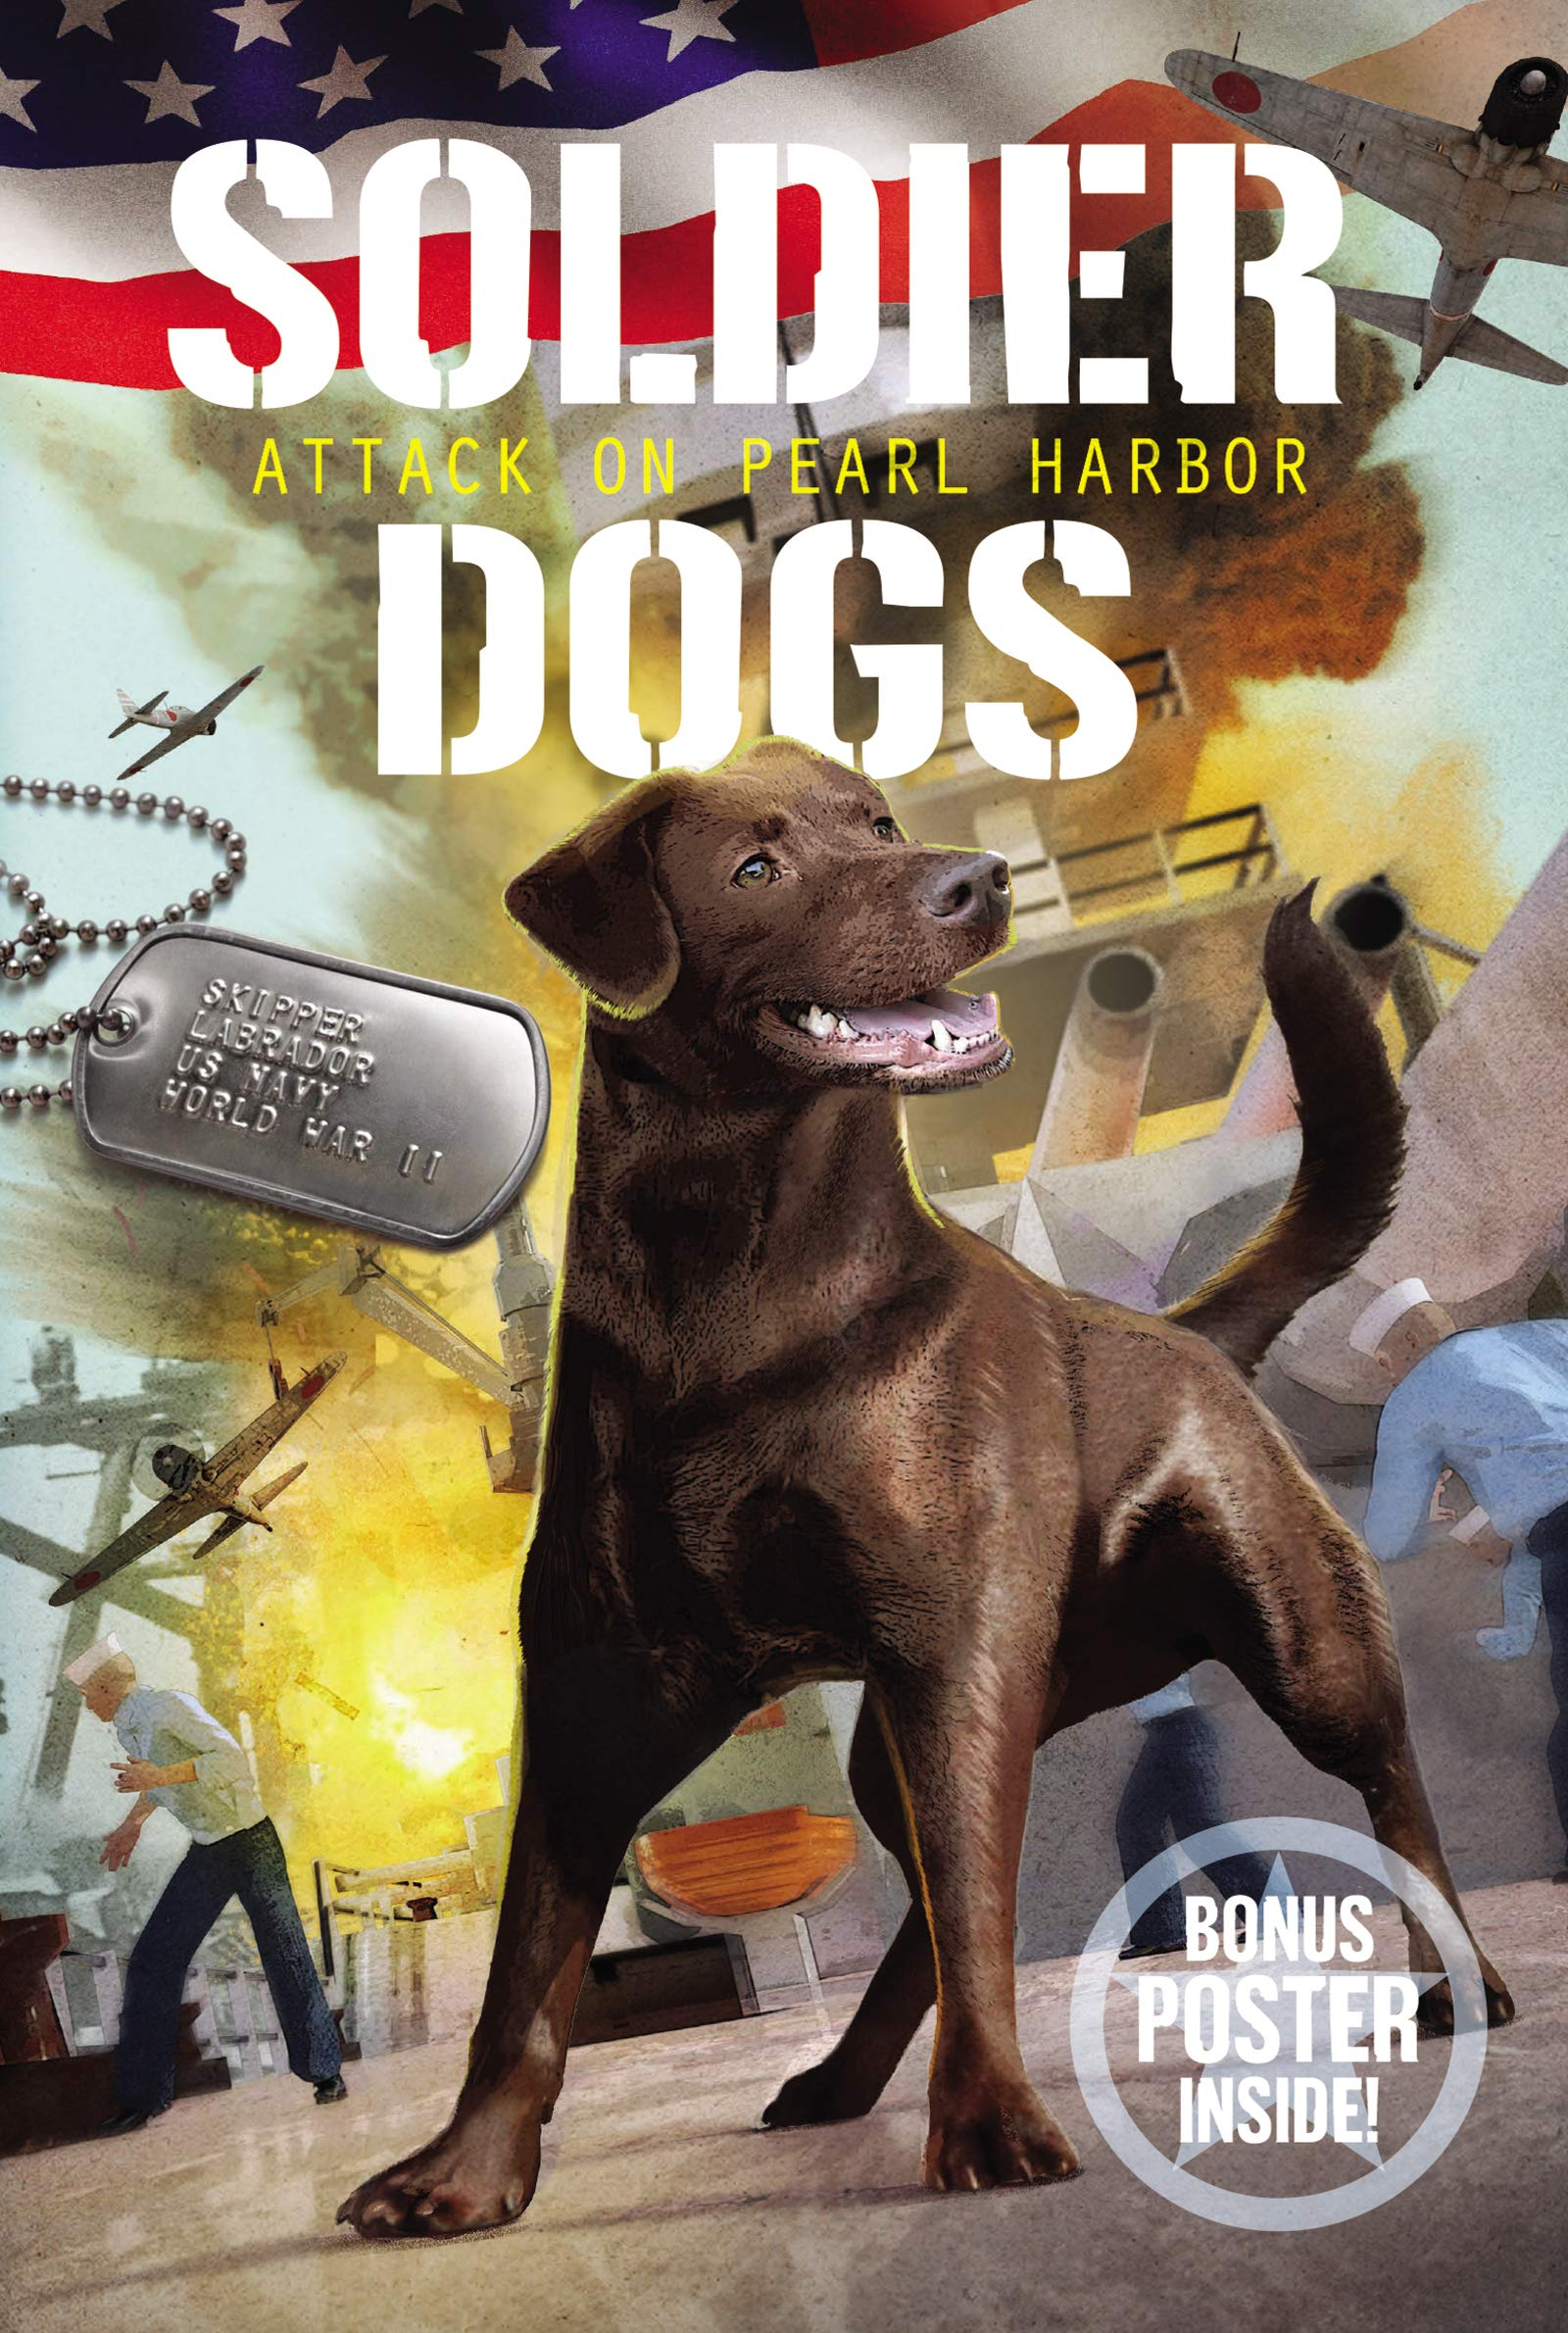 Soldier Dogs Attack on Pearl Harbor